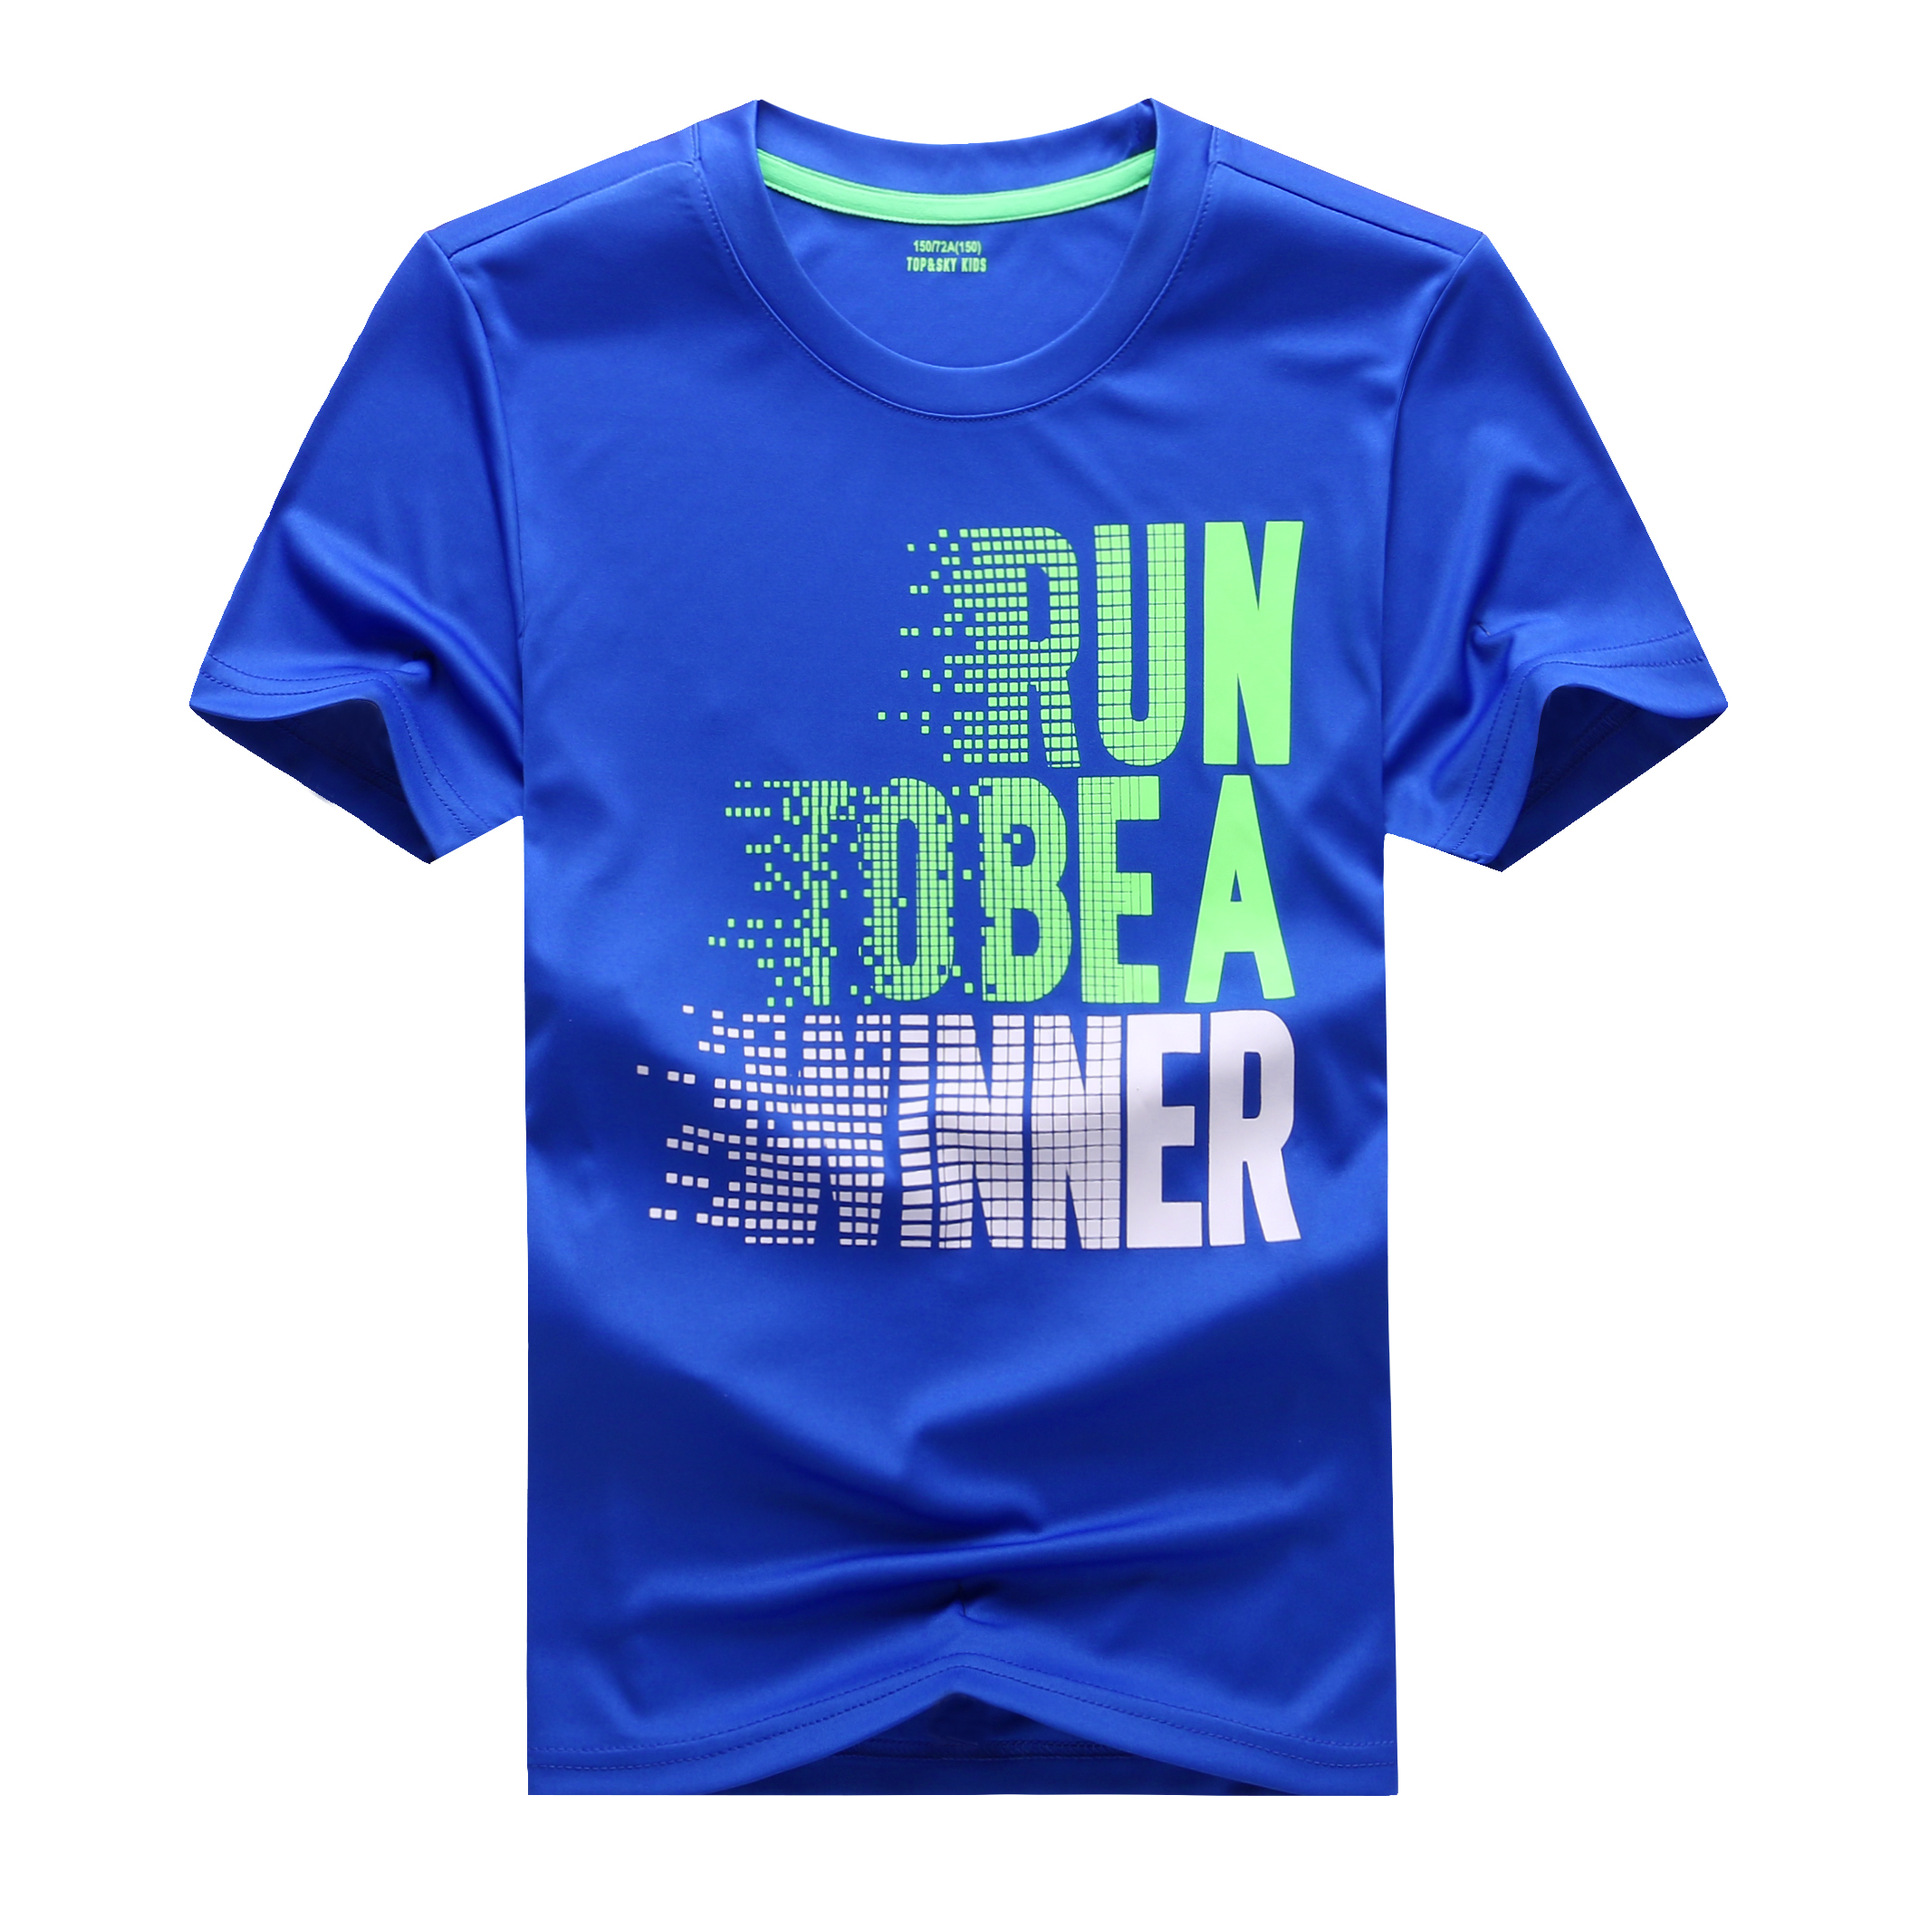 T-Shirt Sport-Tops Teen Baby-Boys Kids Children Summer Short Quick-Drying Running